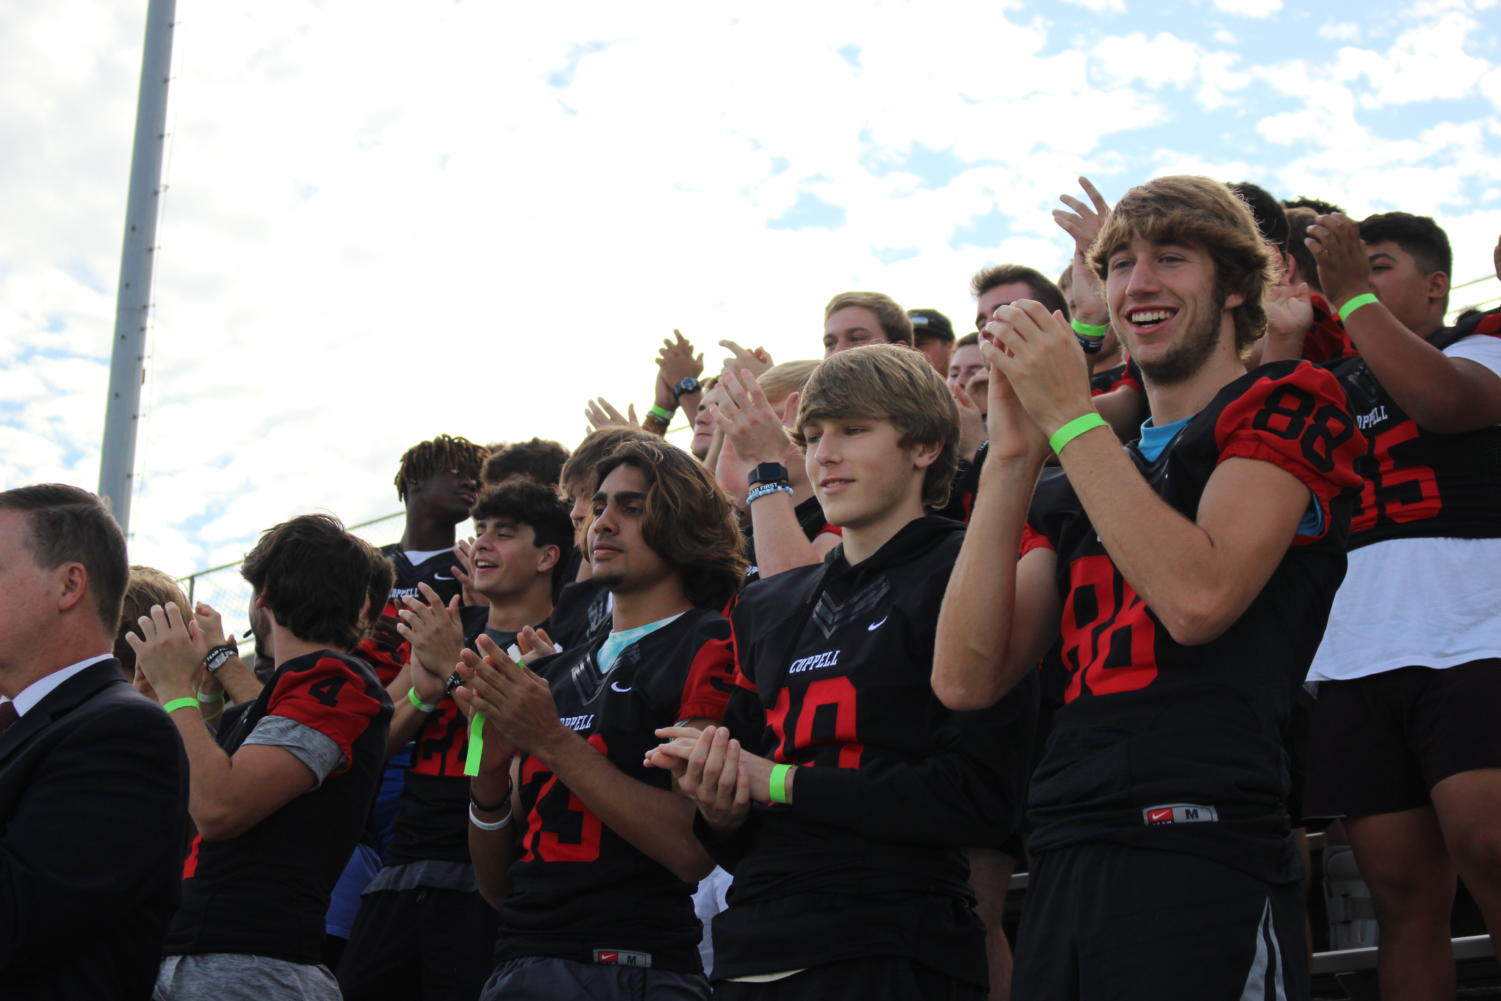 Coppell High School's varsity football team cheers on the varsity marching band at the UIL Region 31 Marching Contest at Standridge Stadium on Tuesday. The Coppell varsity marching band scored a 1, the highest possible score, at the contest.